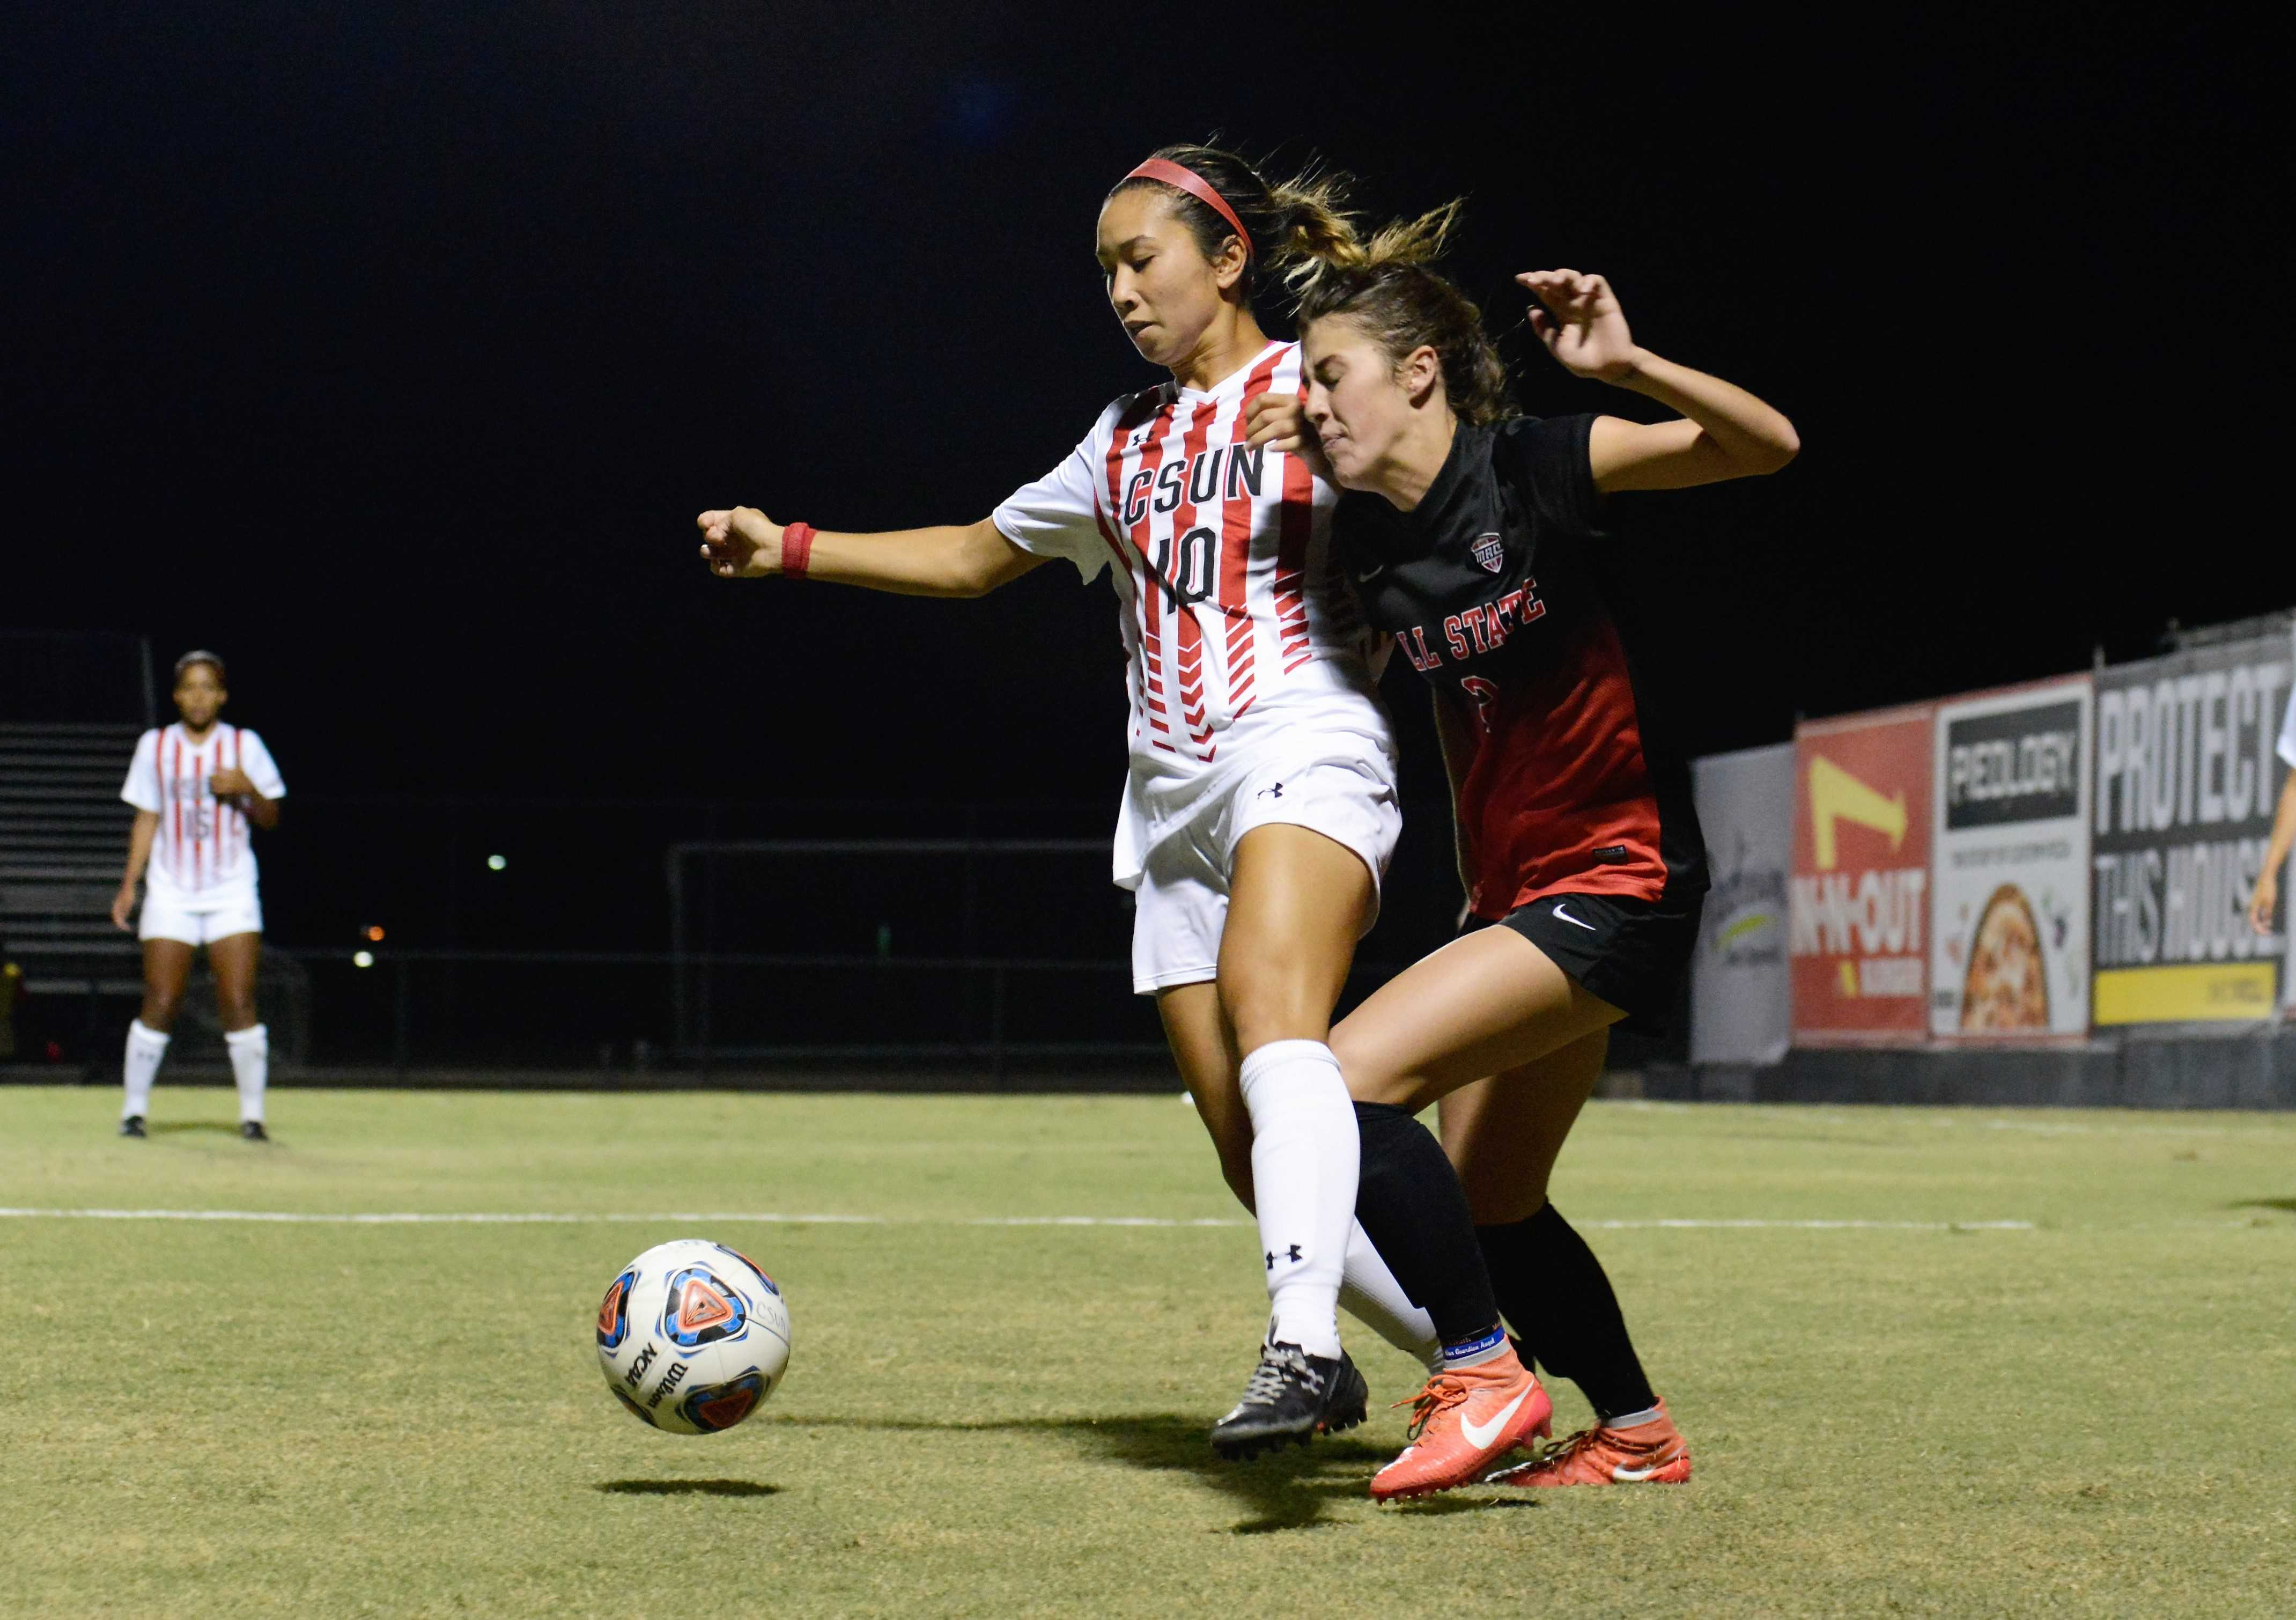 CSUn soccer player blocks opponent from the ball